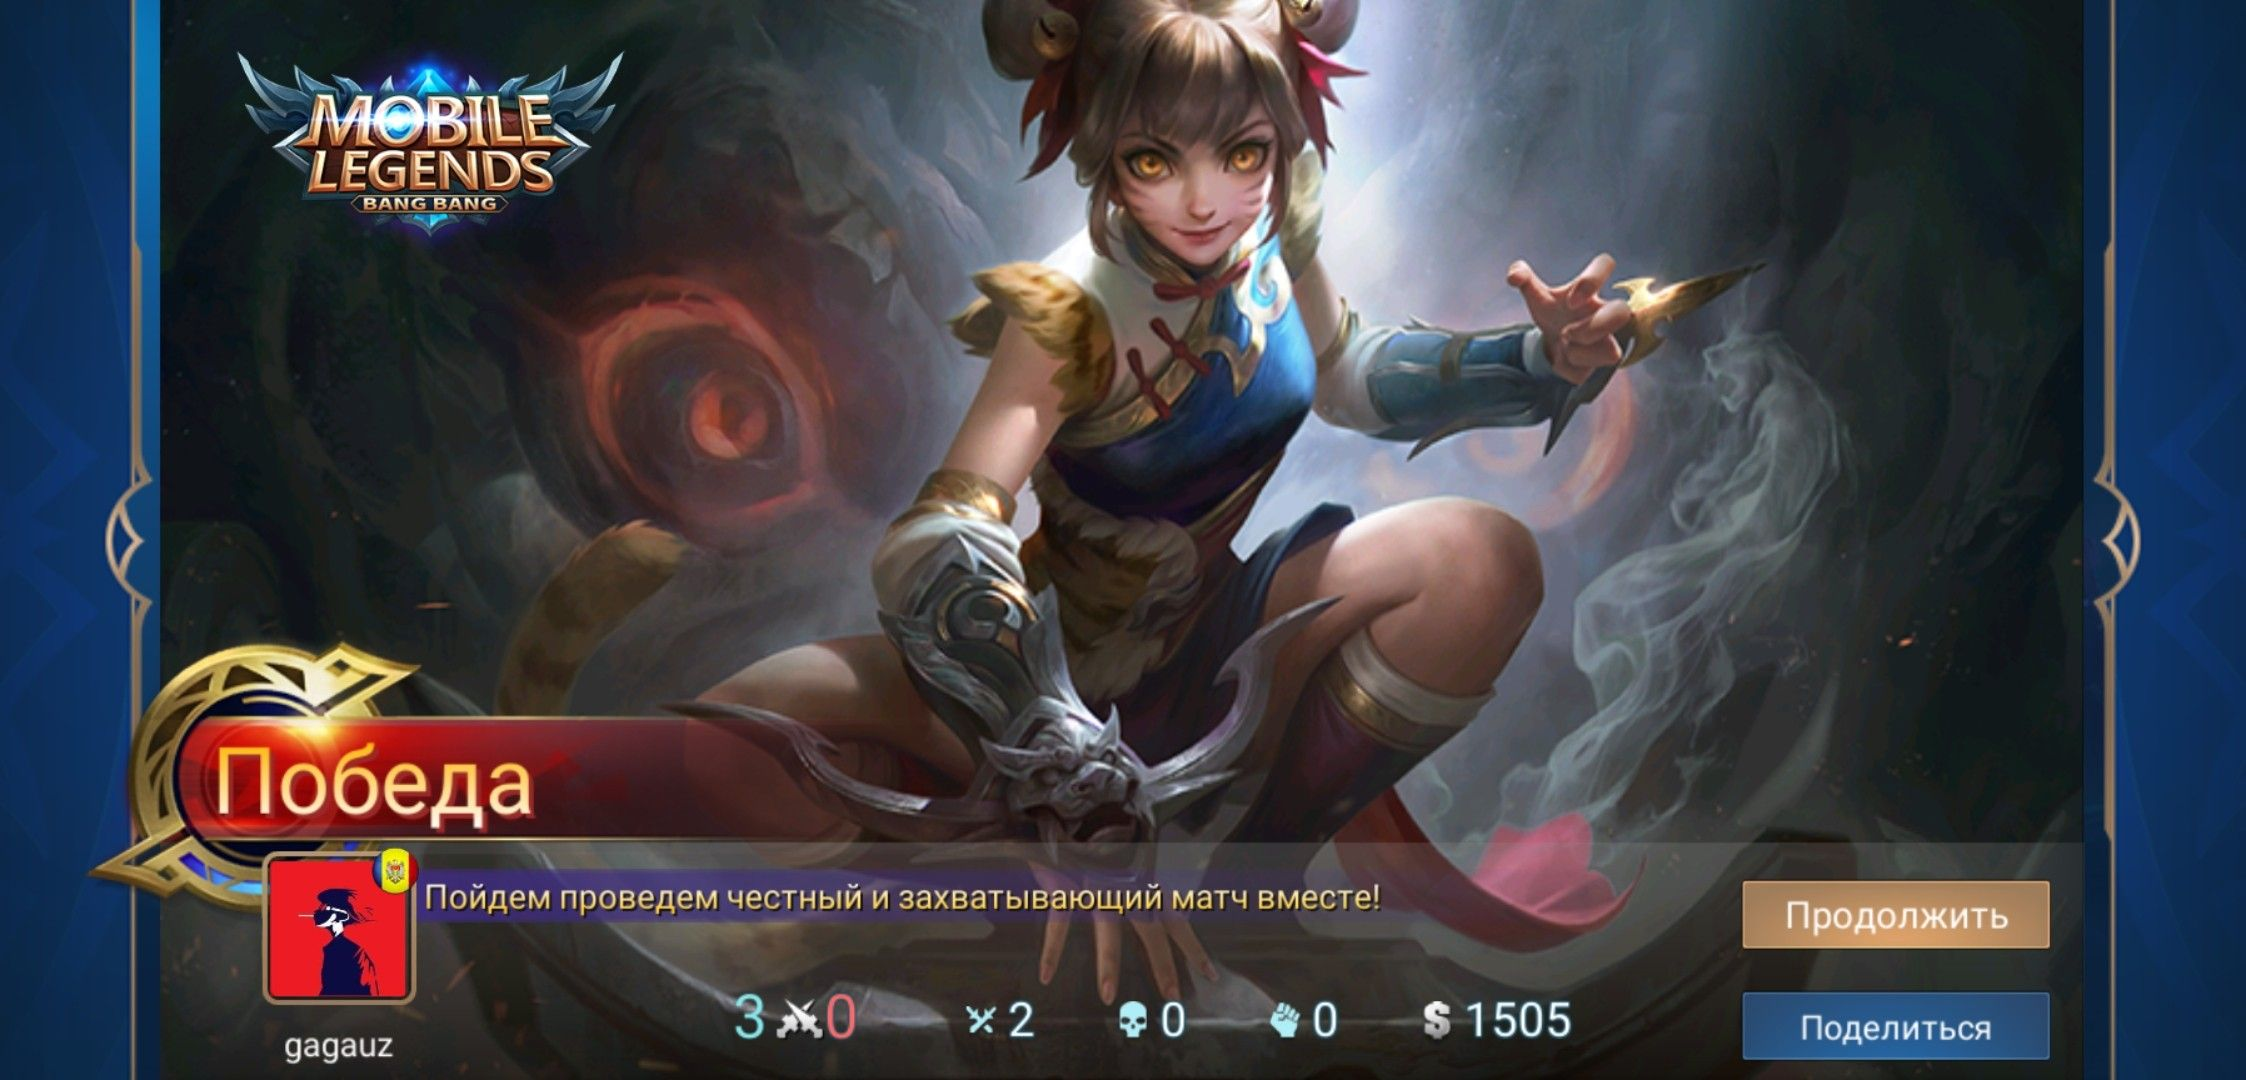 Pin by Iuliana on Mobile Legends in 2020 | Mobile legends ...